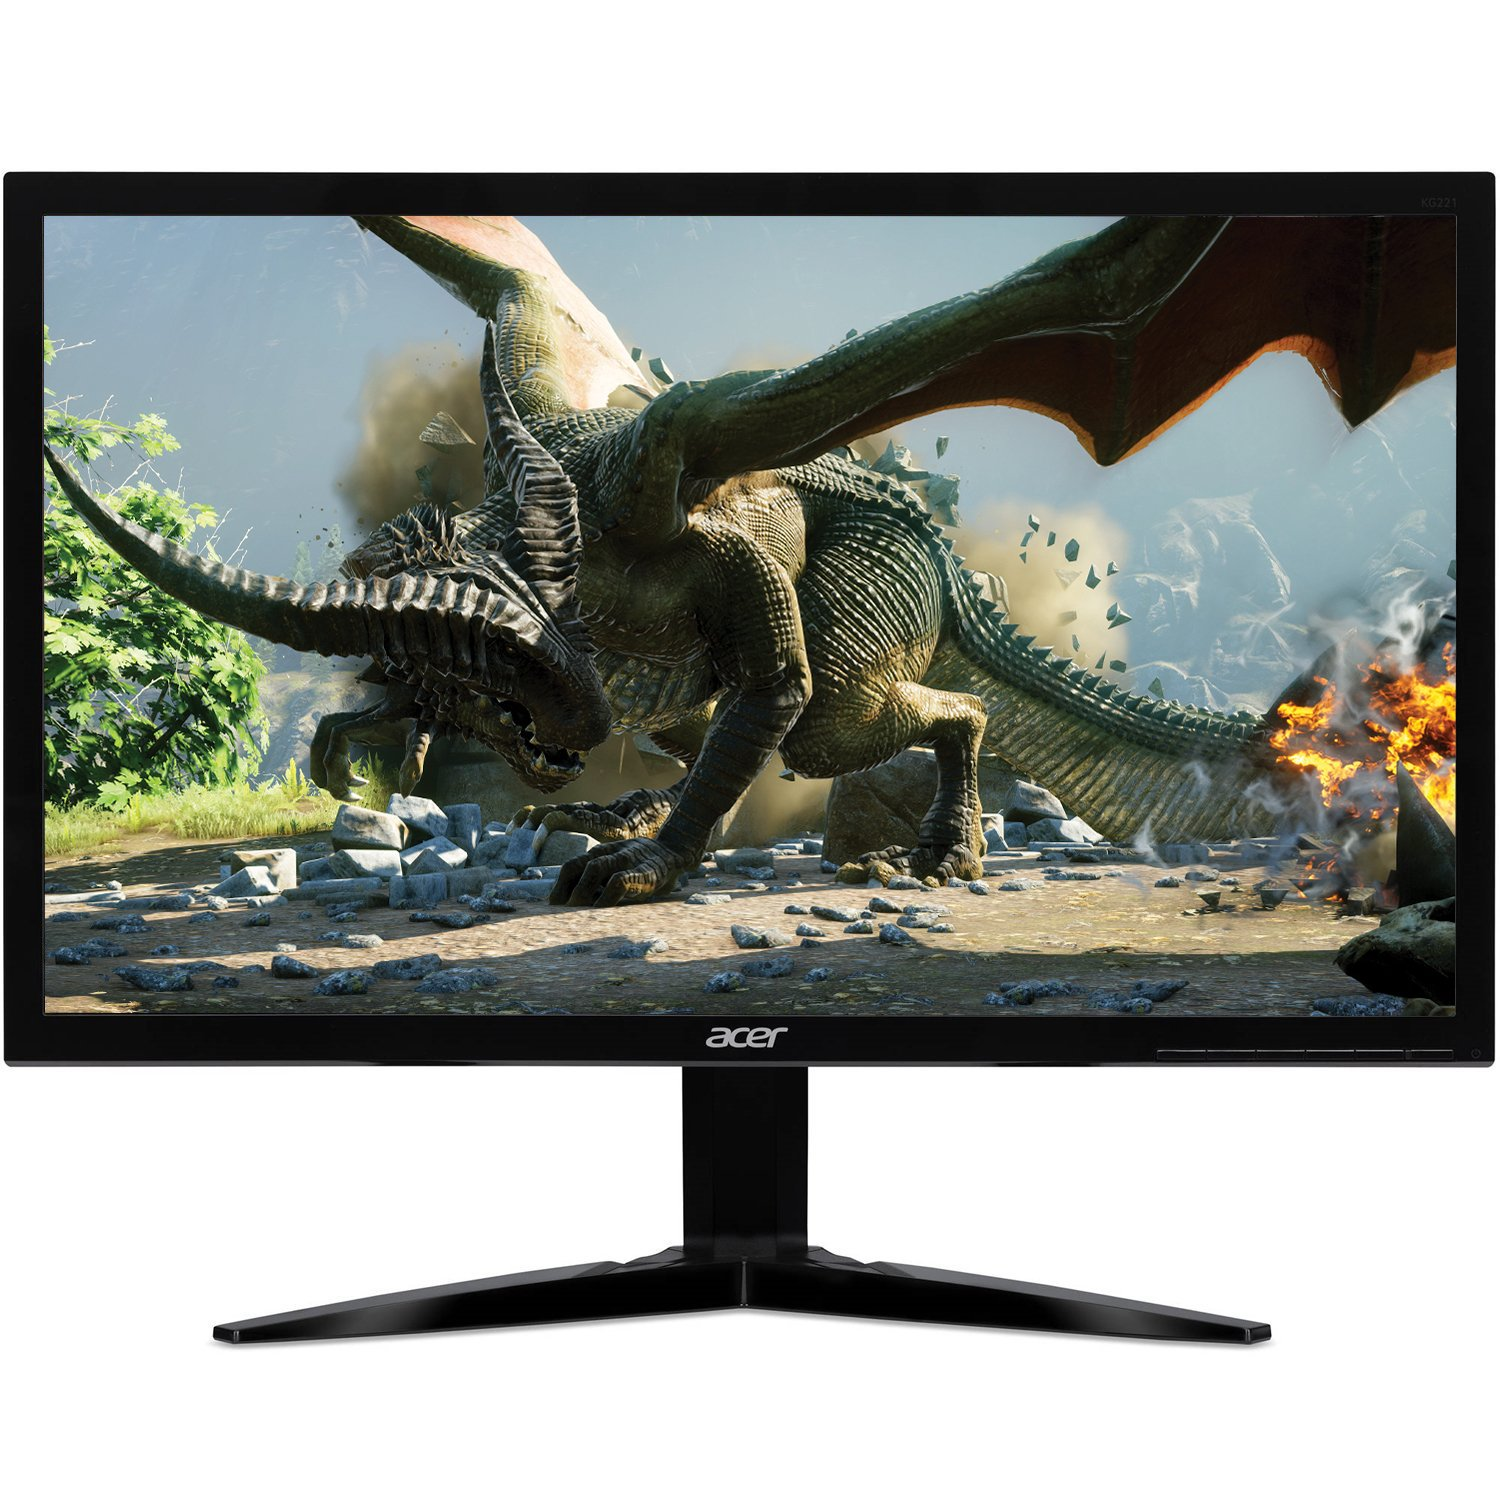 Acer Gaming Monitor 21.5'' KG221Q bmix 1920 x 1080 1ms Response Time AMD FREESYNC Technology (HDMI & VGA Ports) by Acer